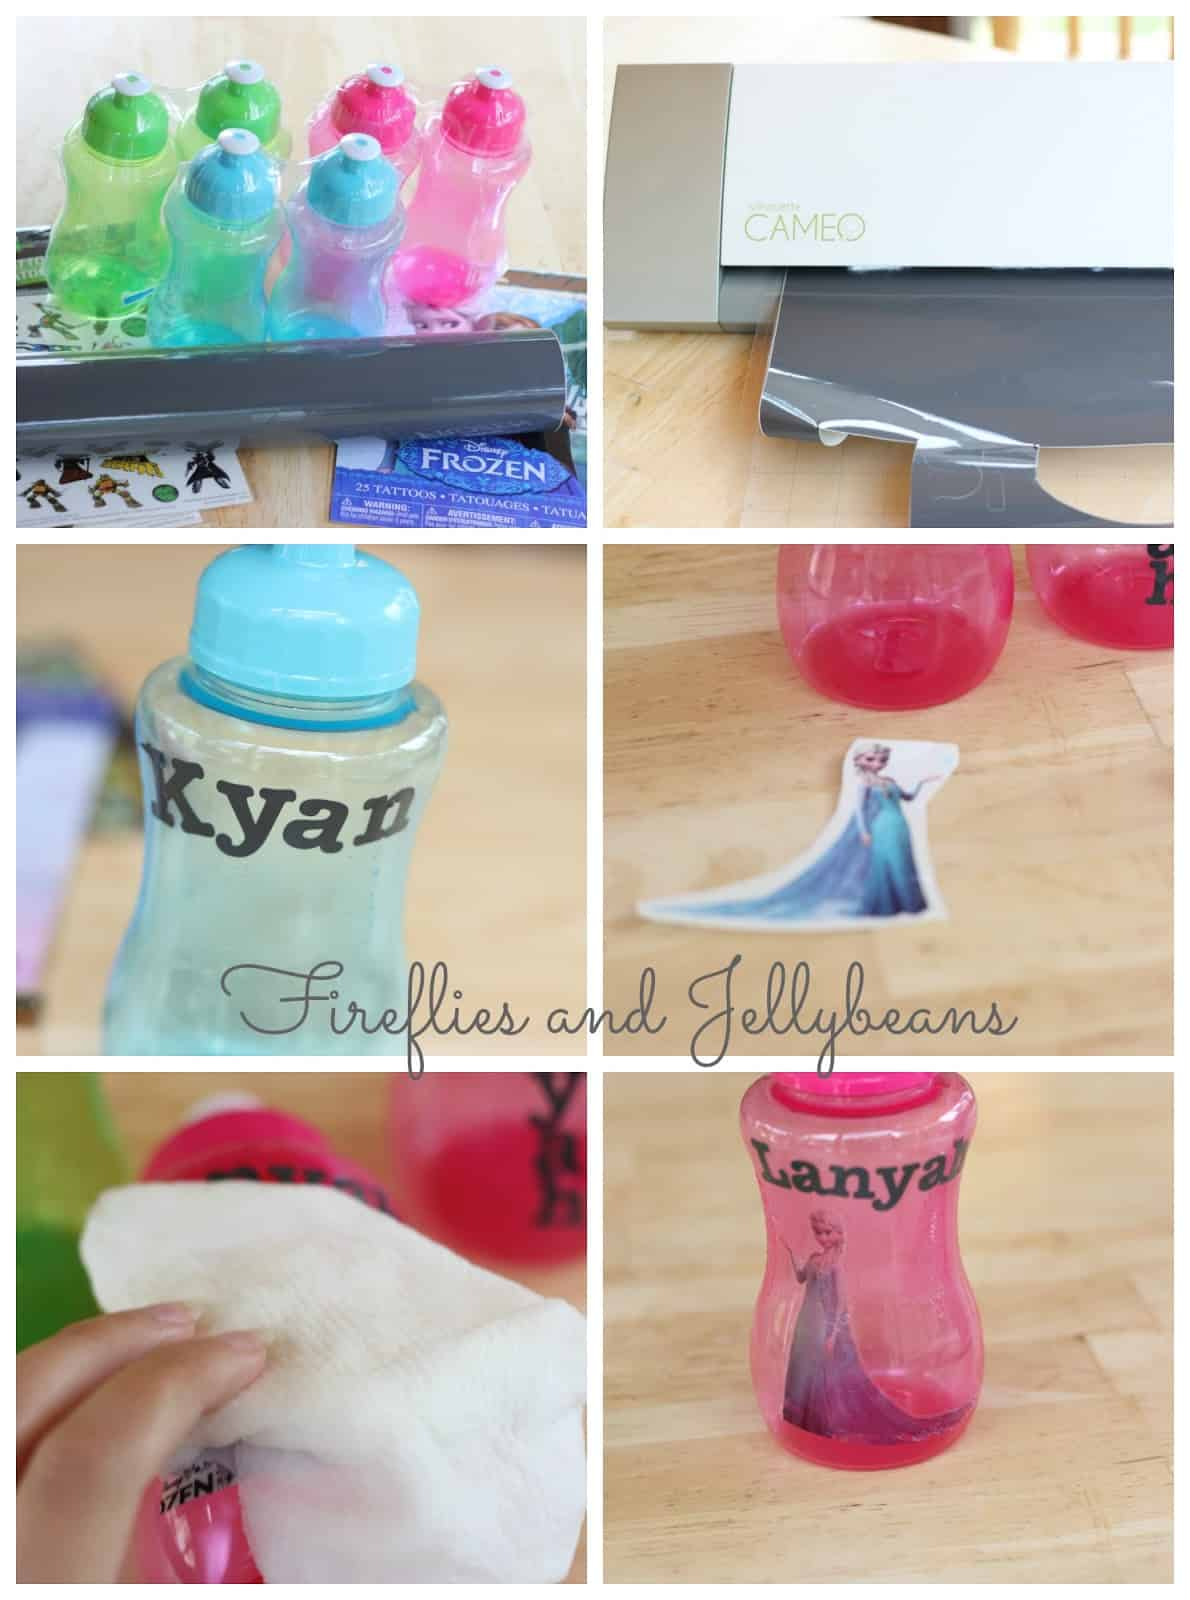 Personalized water bottles made with temporary tattoos